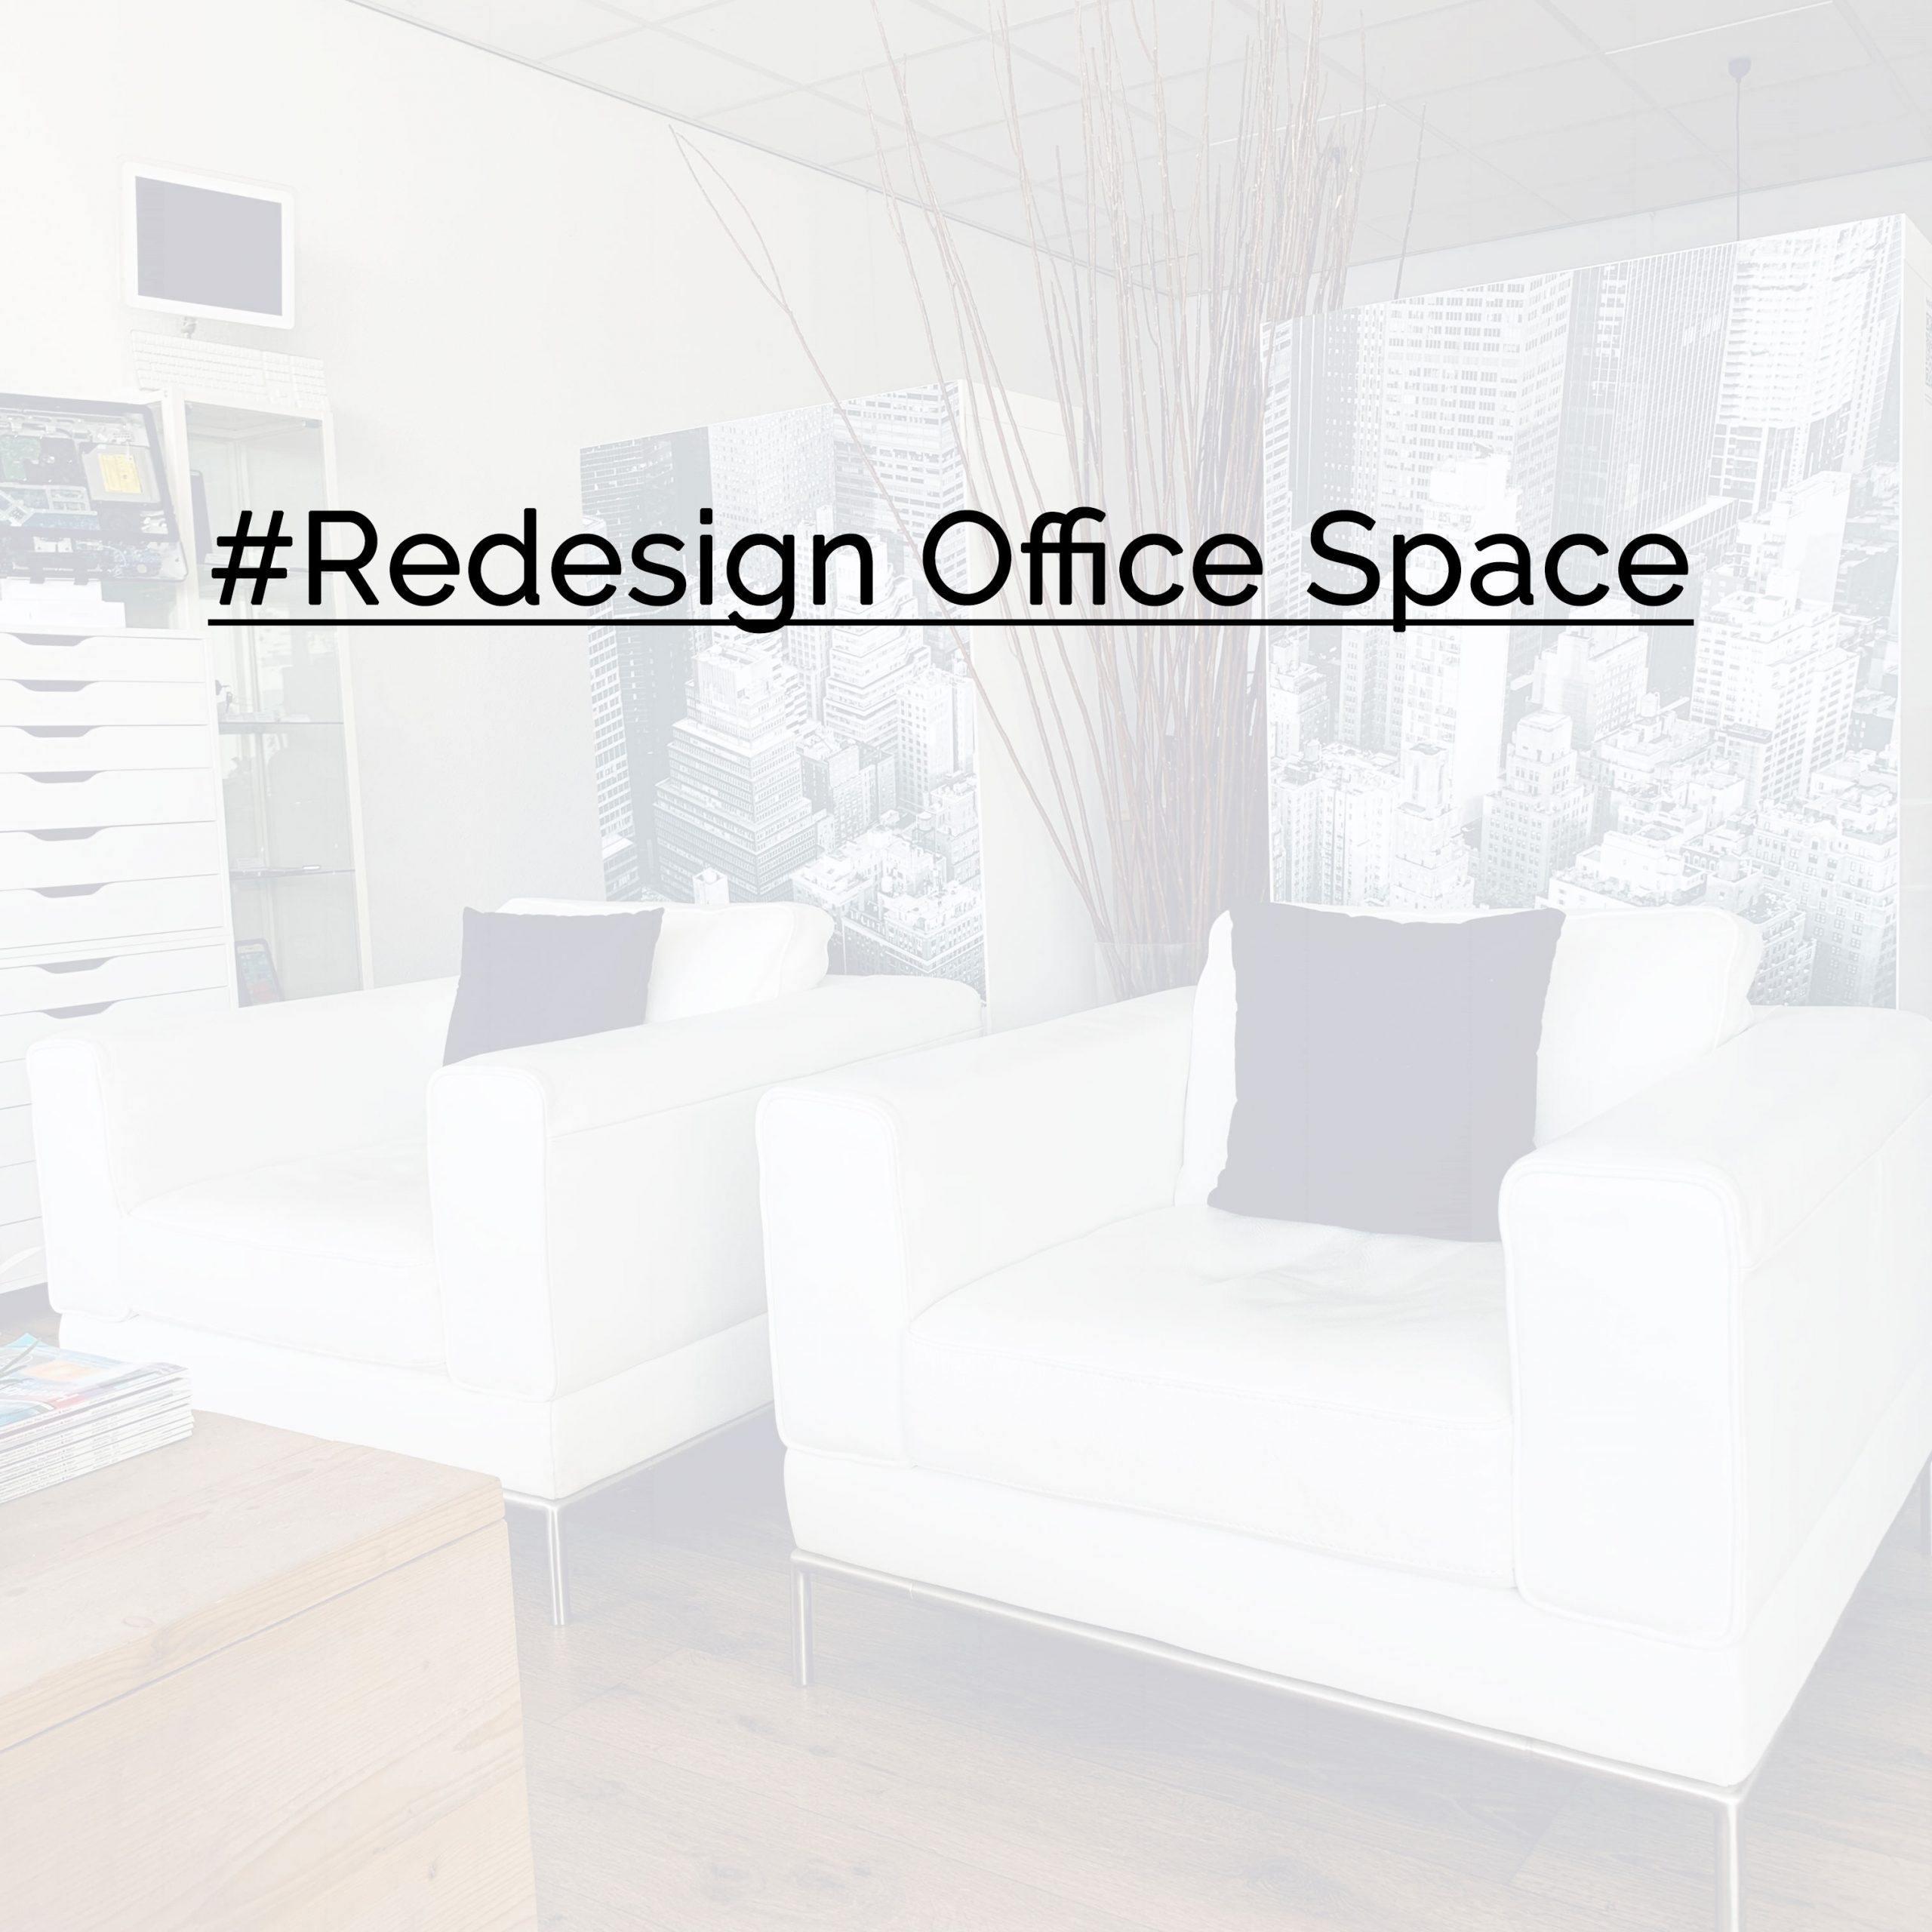 Redisign office space